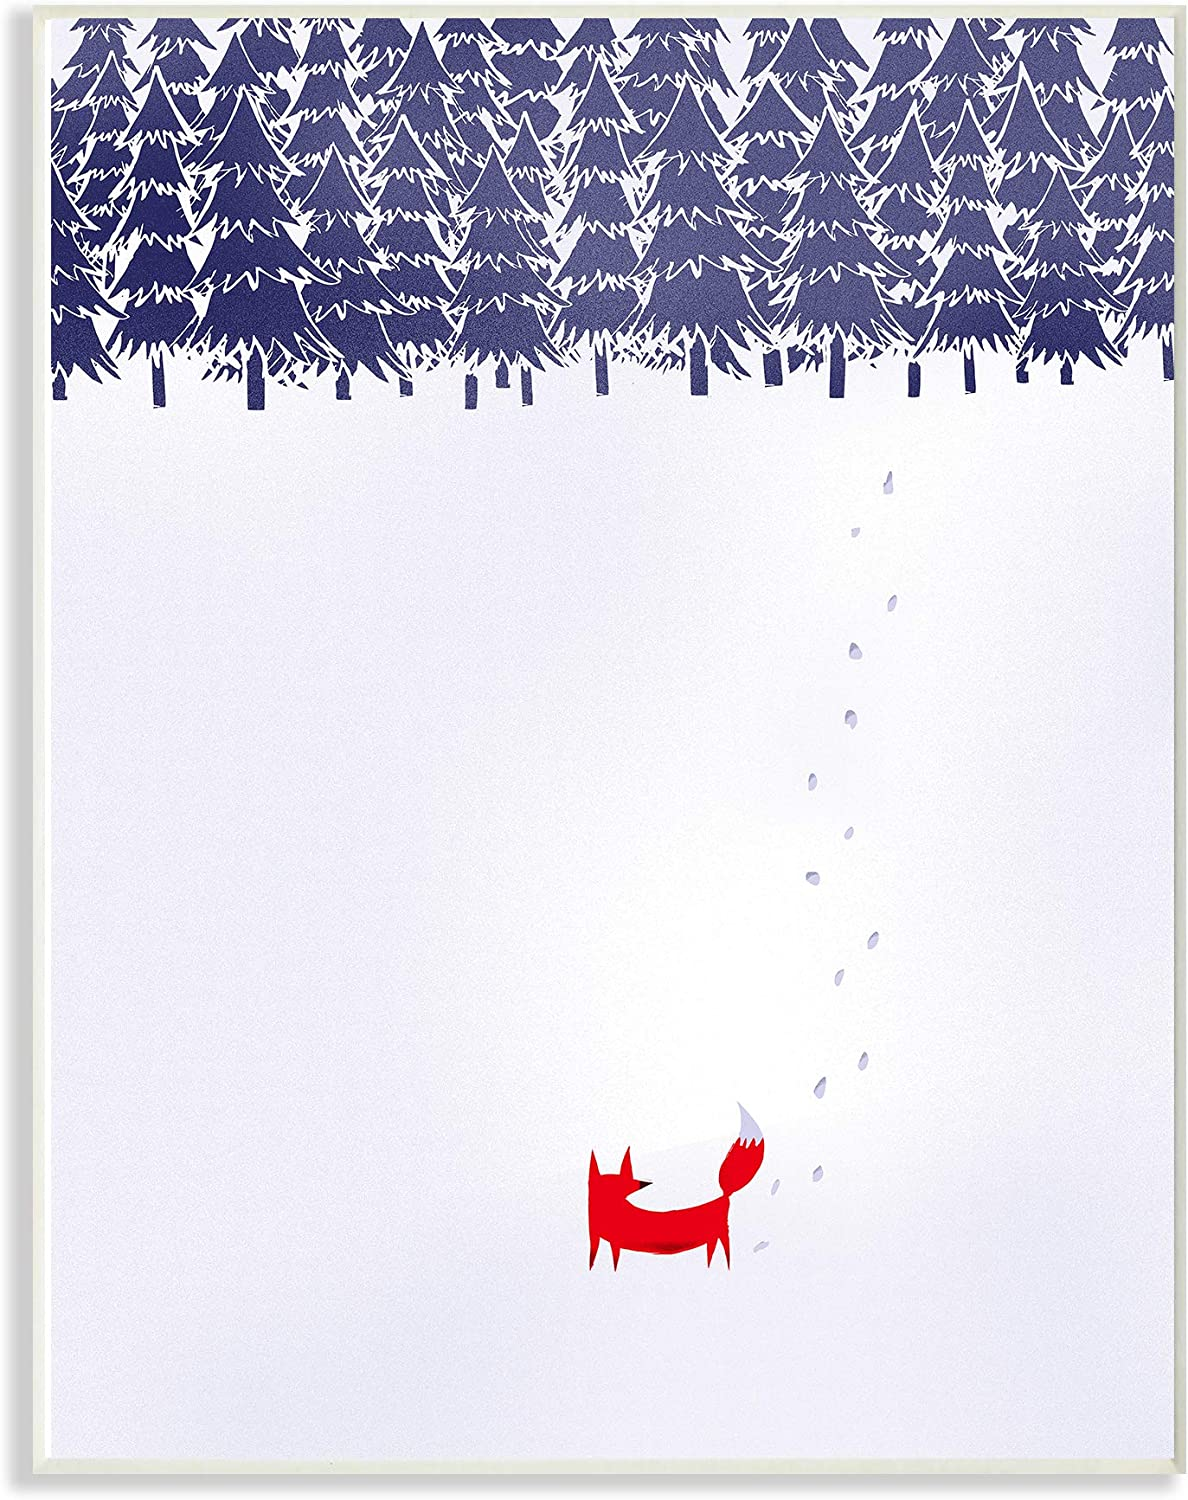 Stupell Industries The Stupell Home Decor Minimal Red Fox in The Snow Blue Pine Forest Wall Plaque Art, 10 x 15, Proudly Made in USA 13 x 19